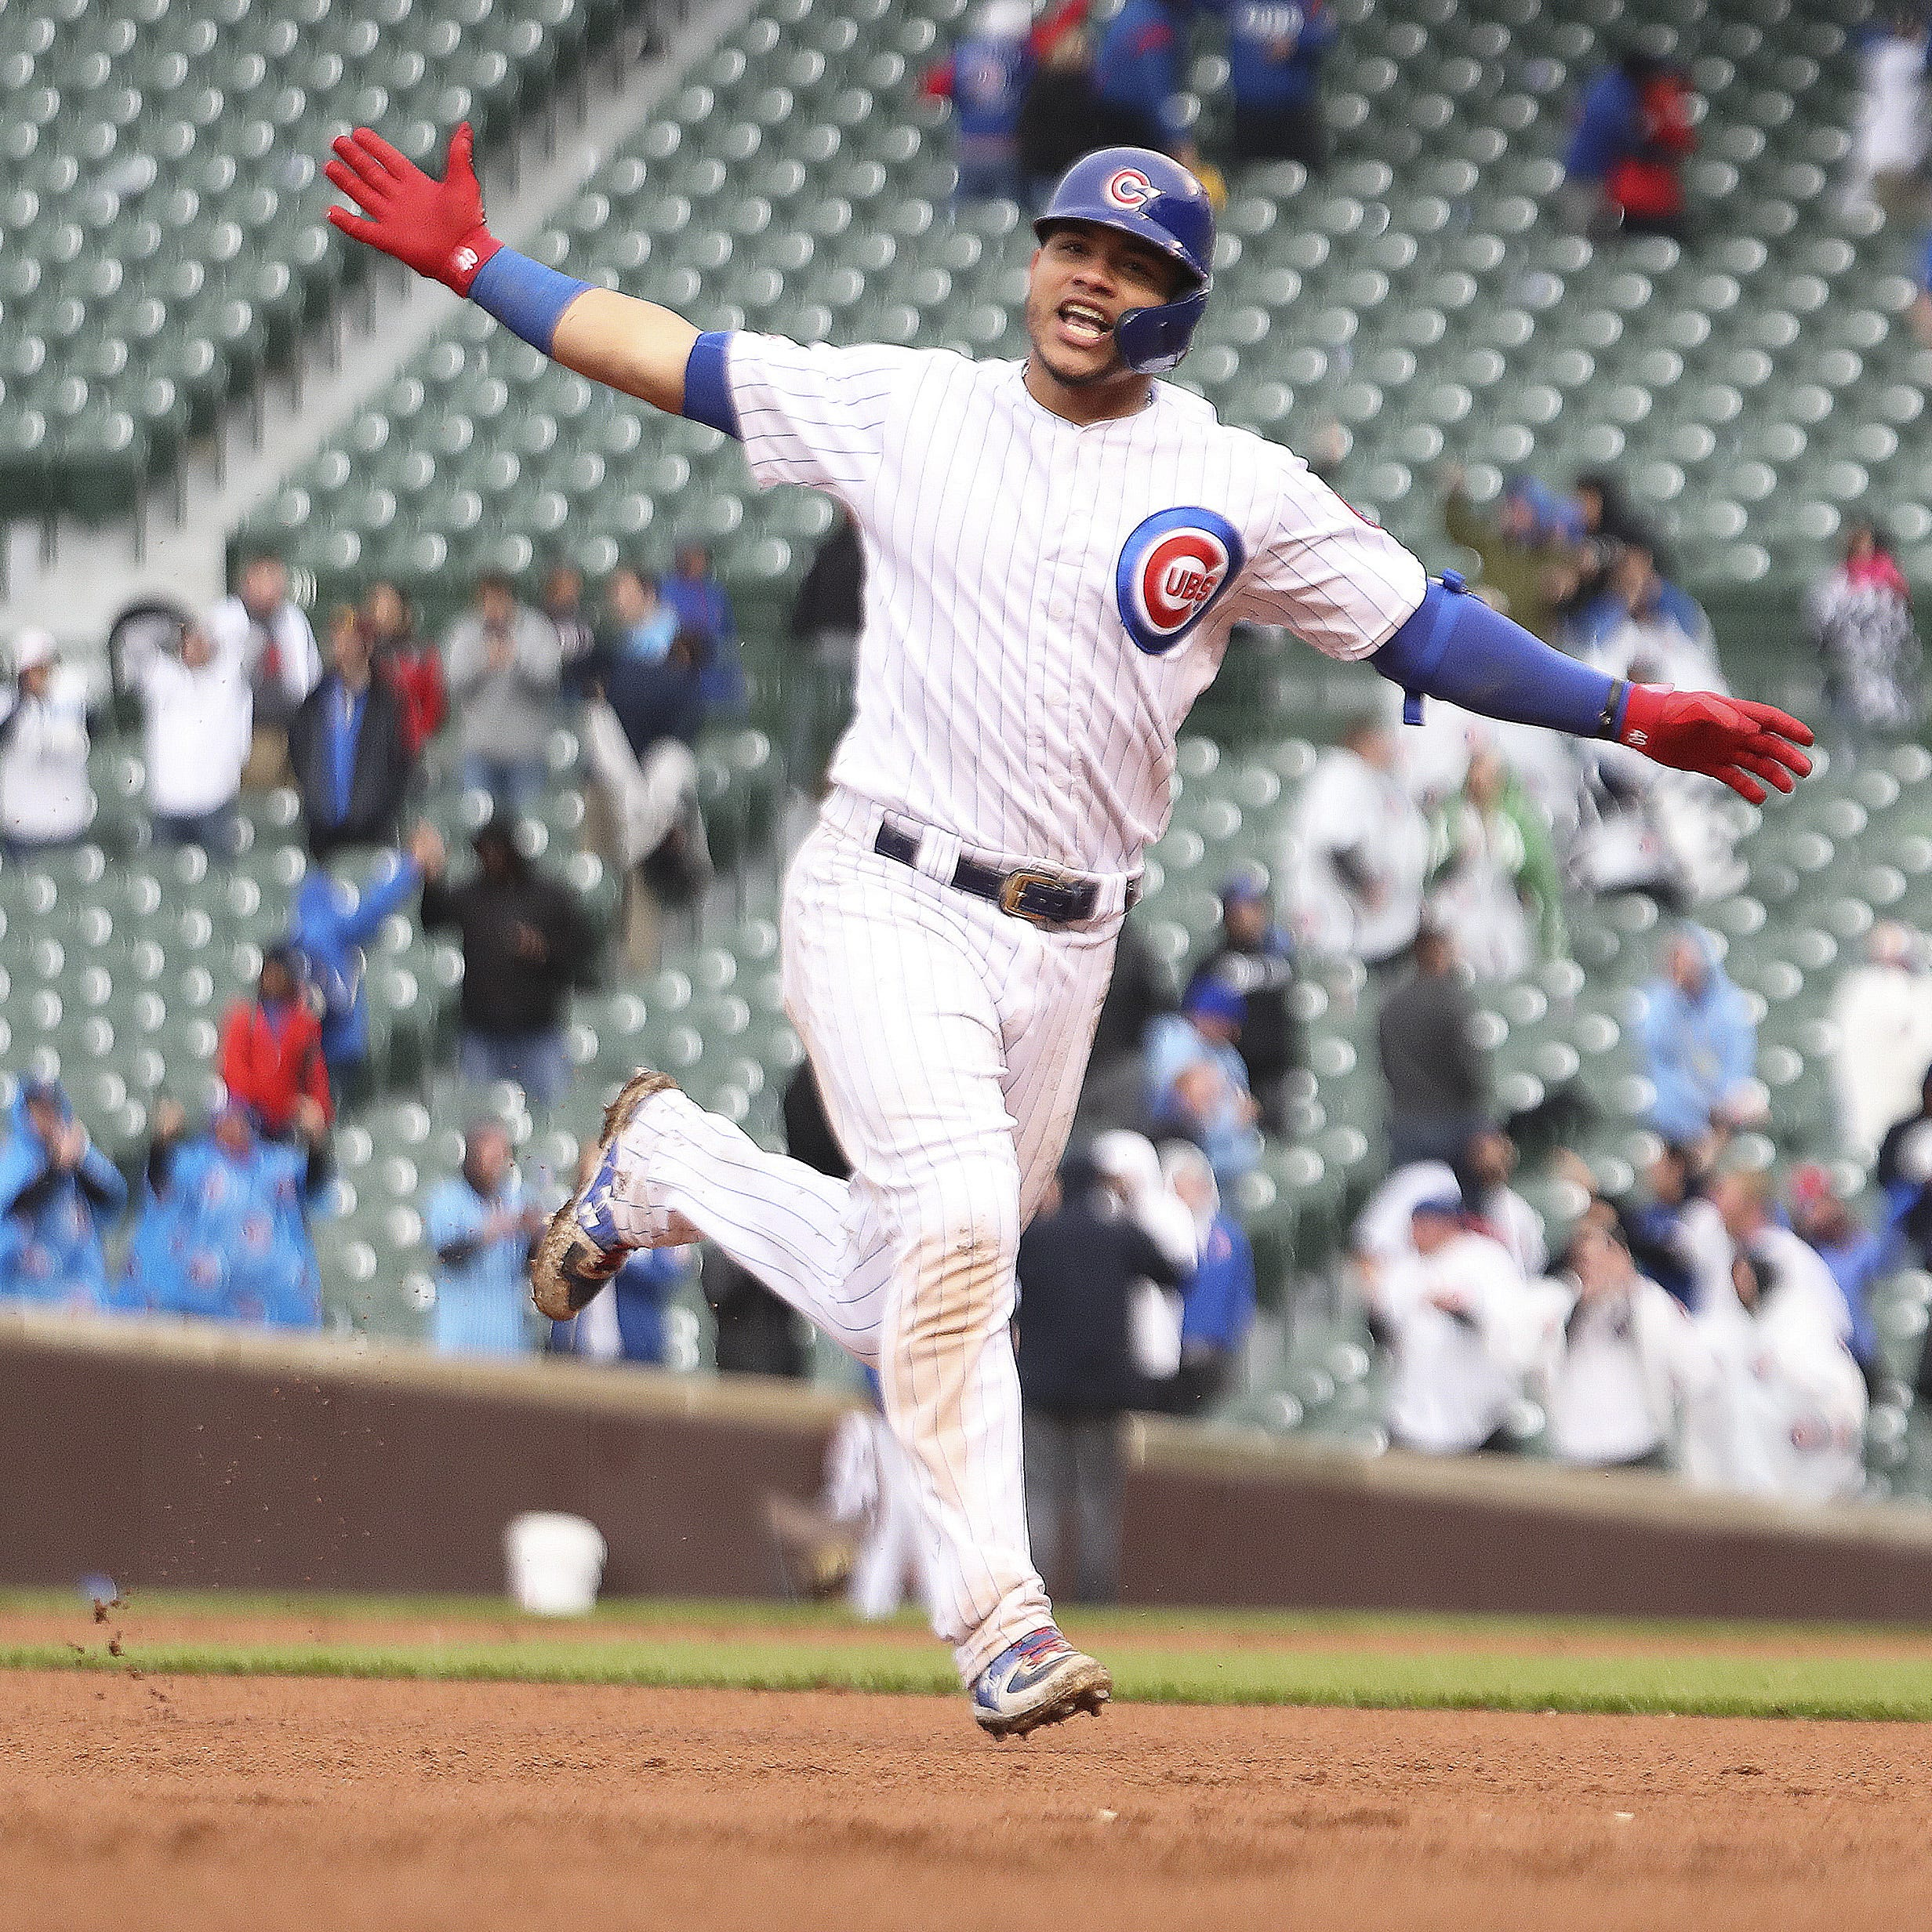 Cubs 2, Brewers 1: Willson Contreras' homer ends a marathon in the 15th